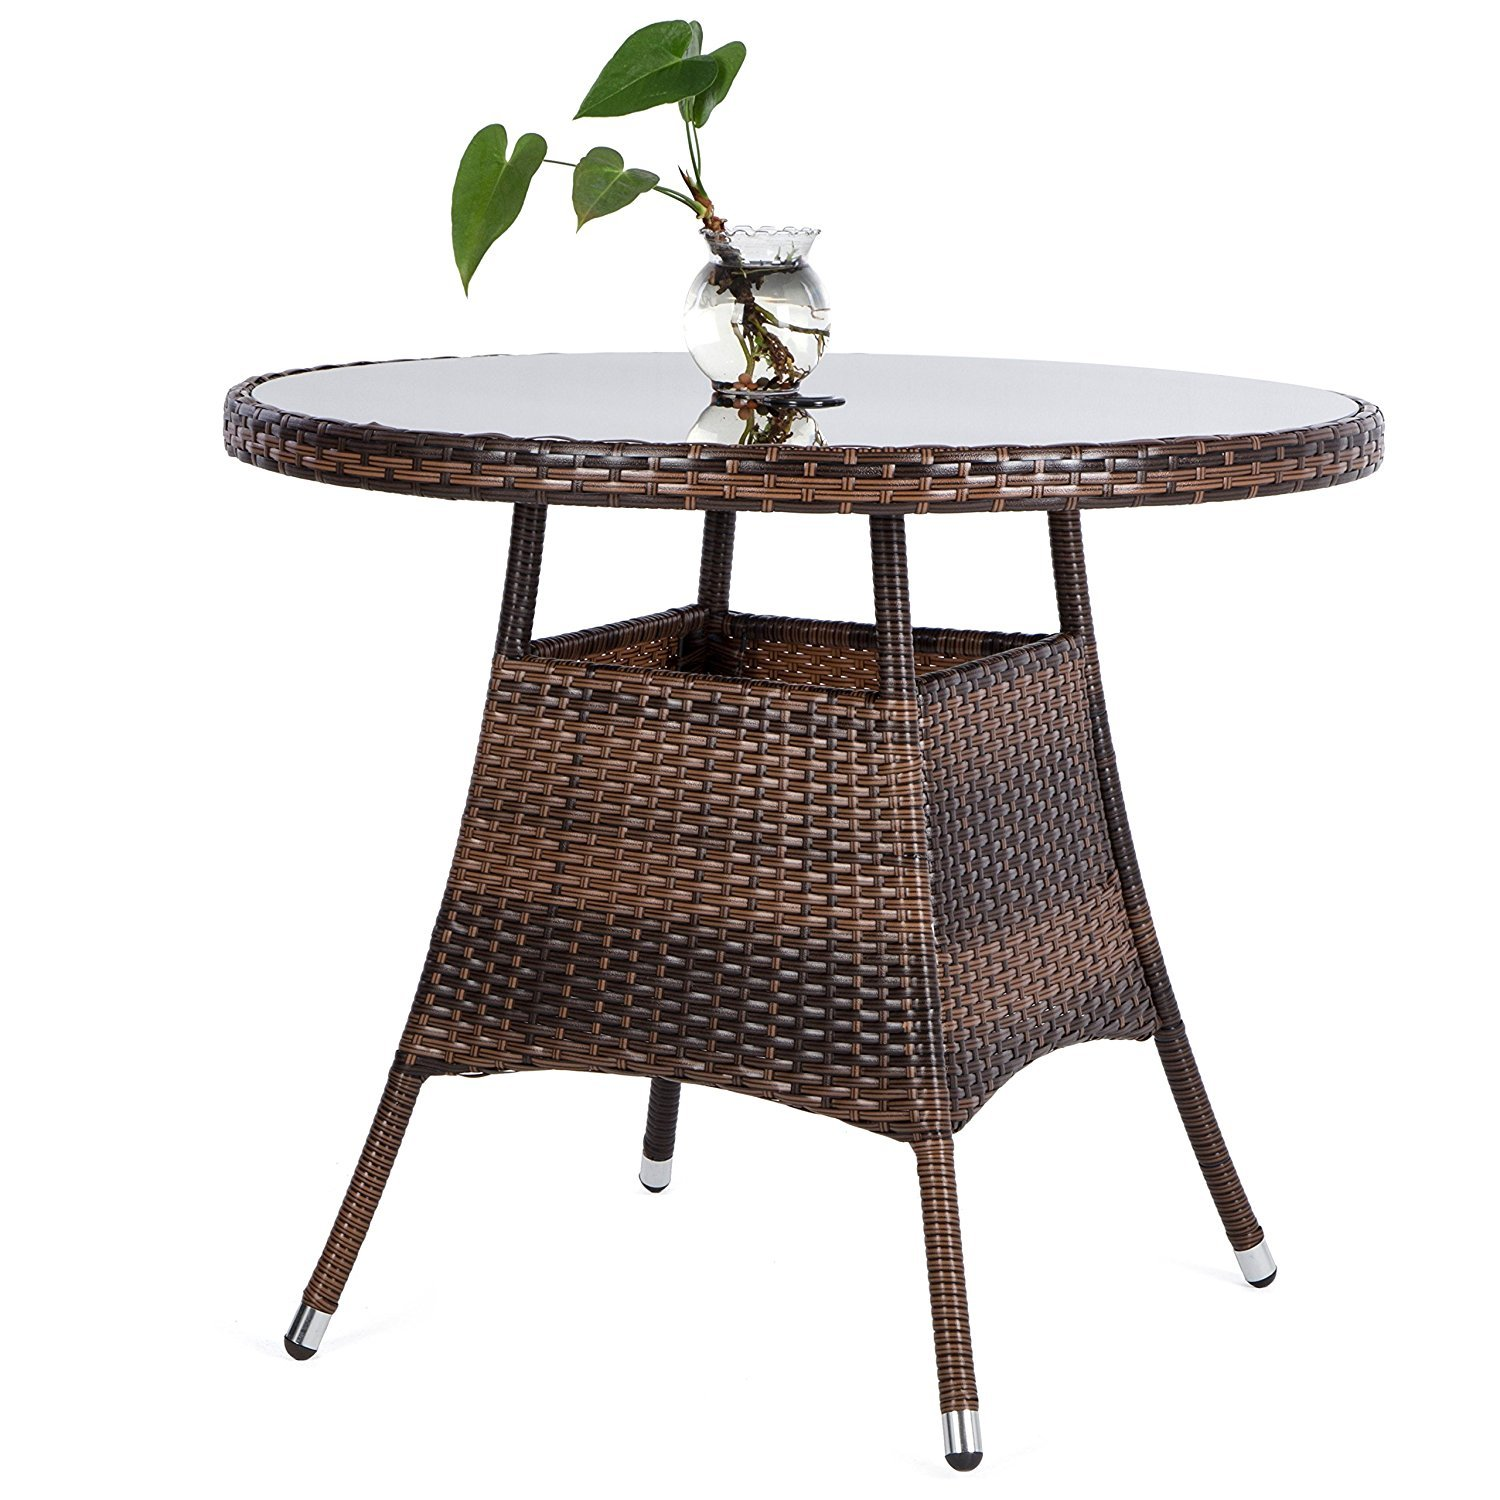 Dining Tables Smonter 36 Round Patio Pe Brown Wicker Dining Table Tempered Glass Top Umbrella Stand Table Outdoor Furniture Garden Table For Backyard Pool Balcony Porch Brown Patio Lawn Garden Fenz Si